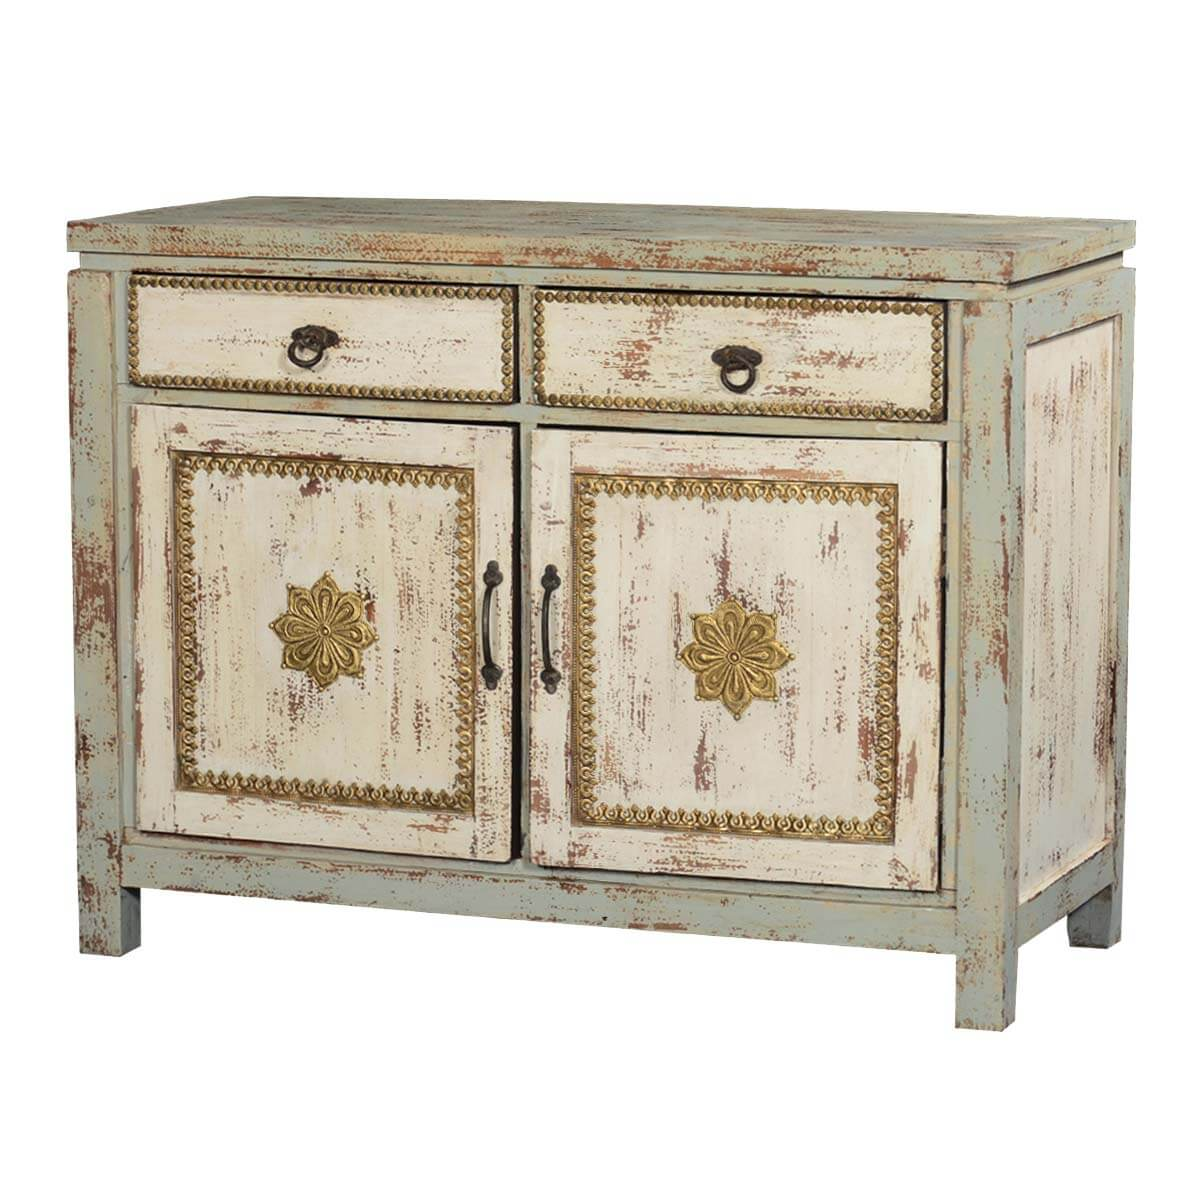 Industrial Style Solid Wood Square Storage Trunk 5 Drawer: Rustic Solid Wood New Orleans Storage Cabinet With 2 Drawers